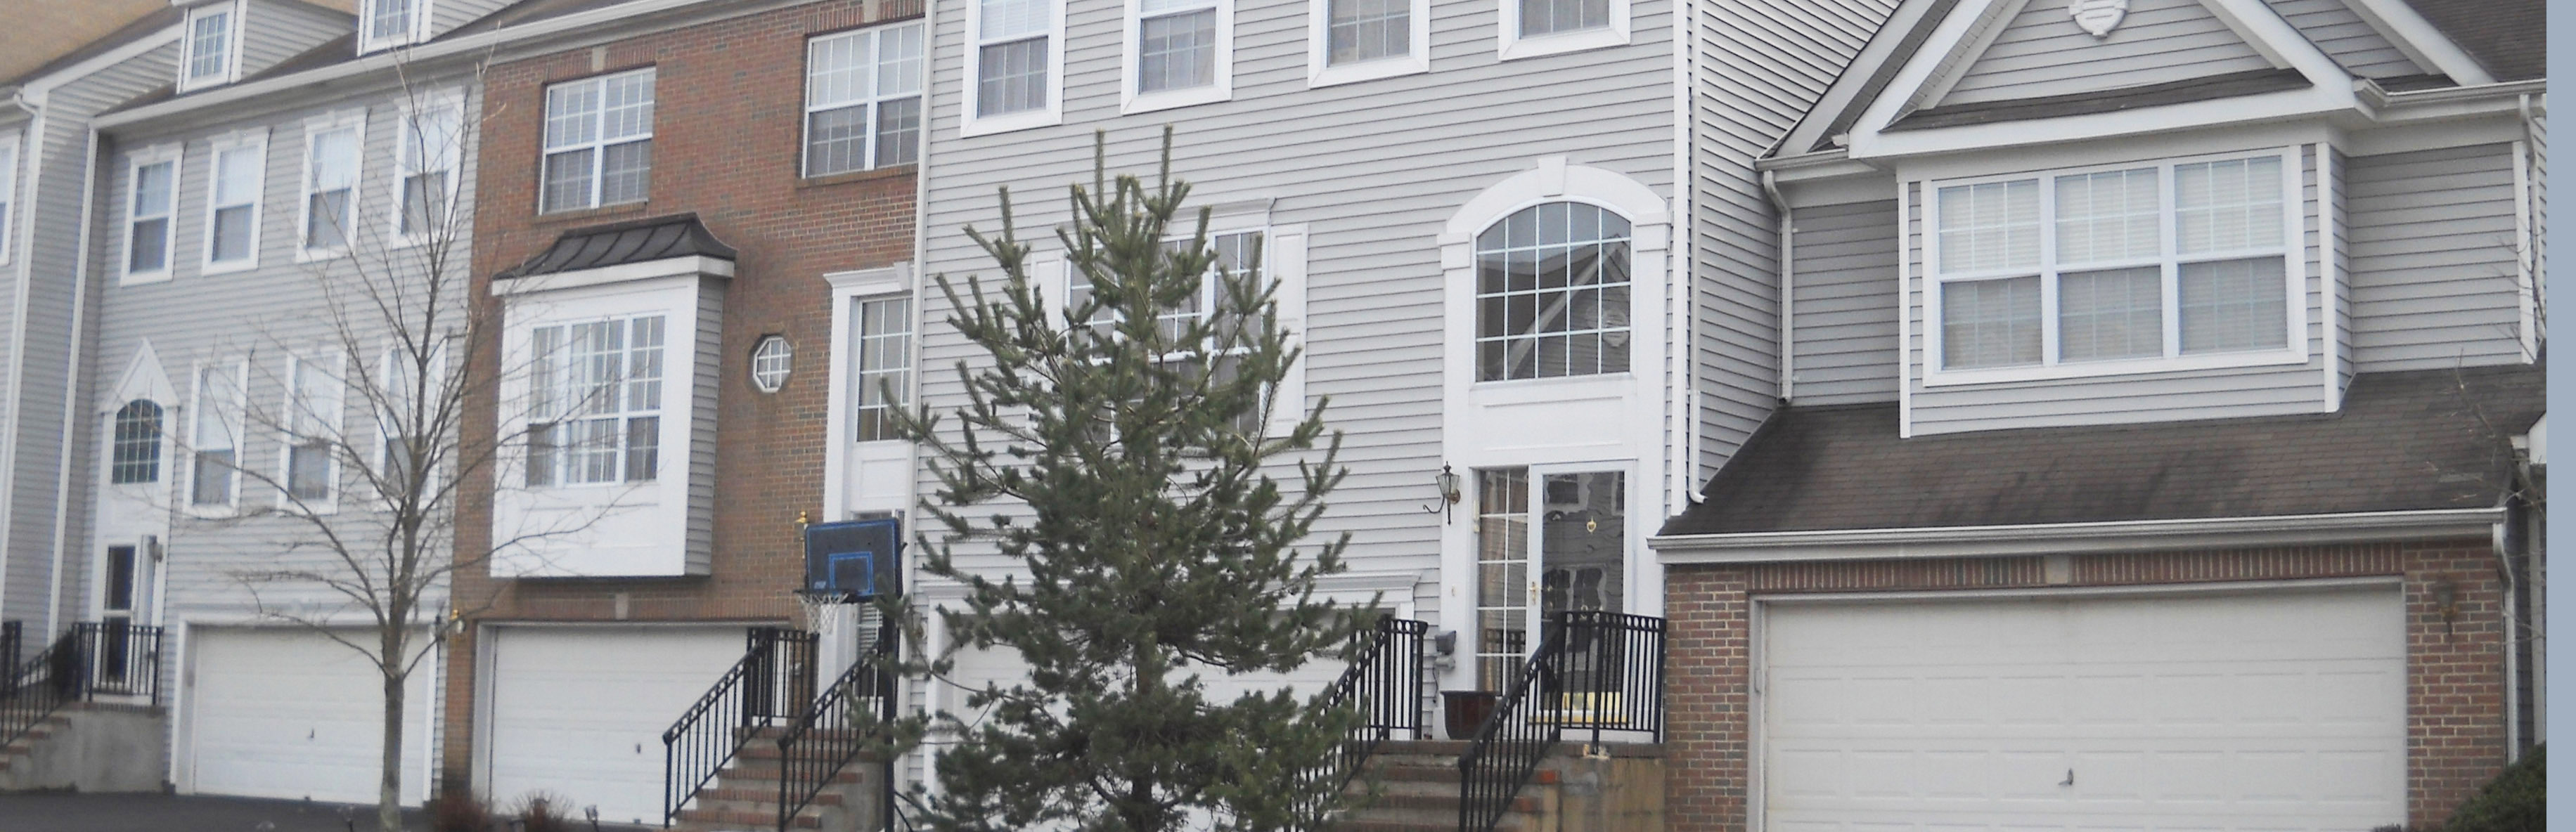 IV-Condo-Or-Townhome-Inspections-Monmouth-County-NJ